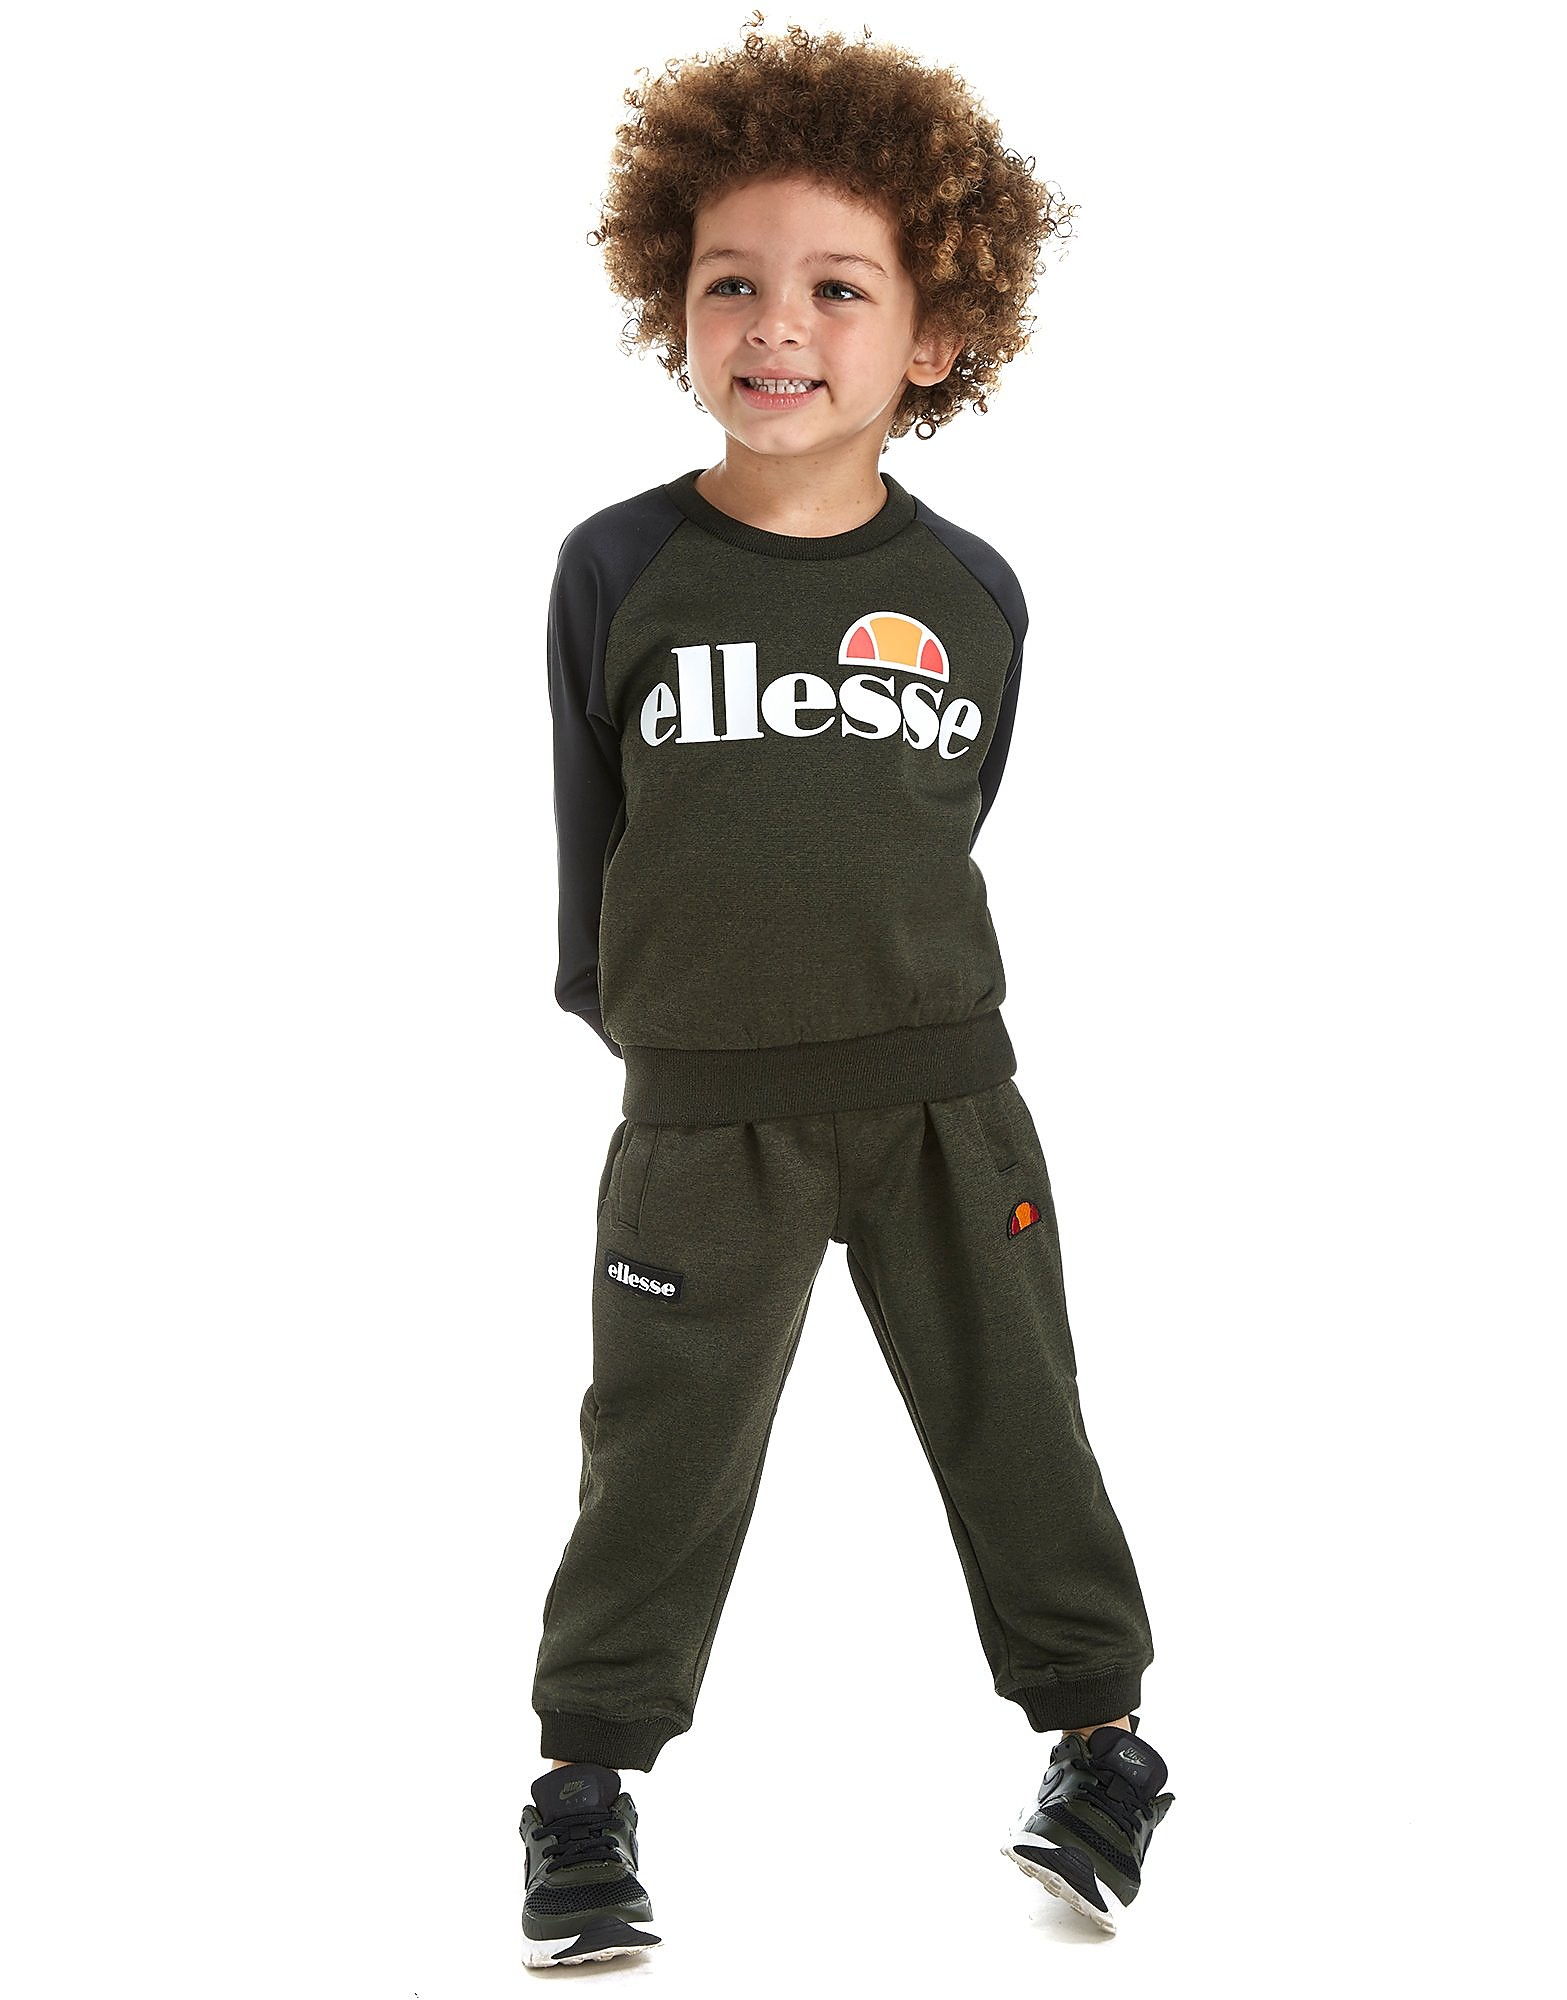 Ellesse Bervo Crew Suit Infant